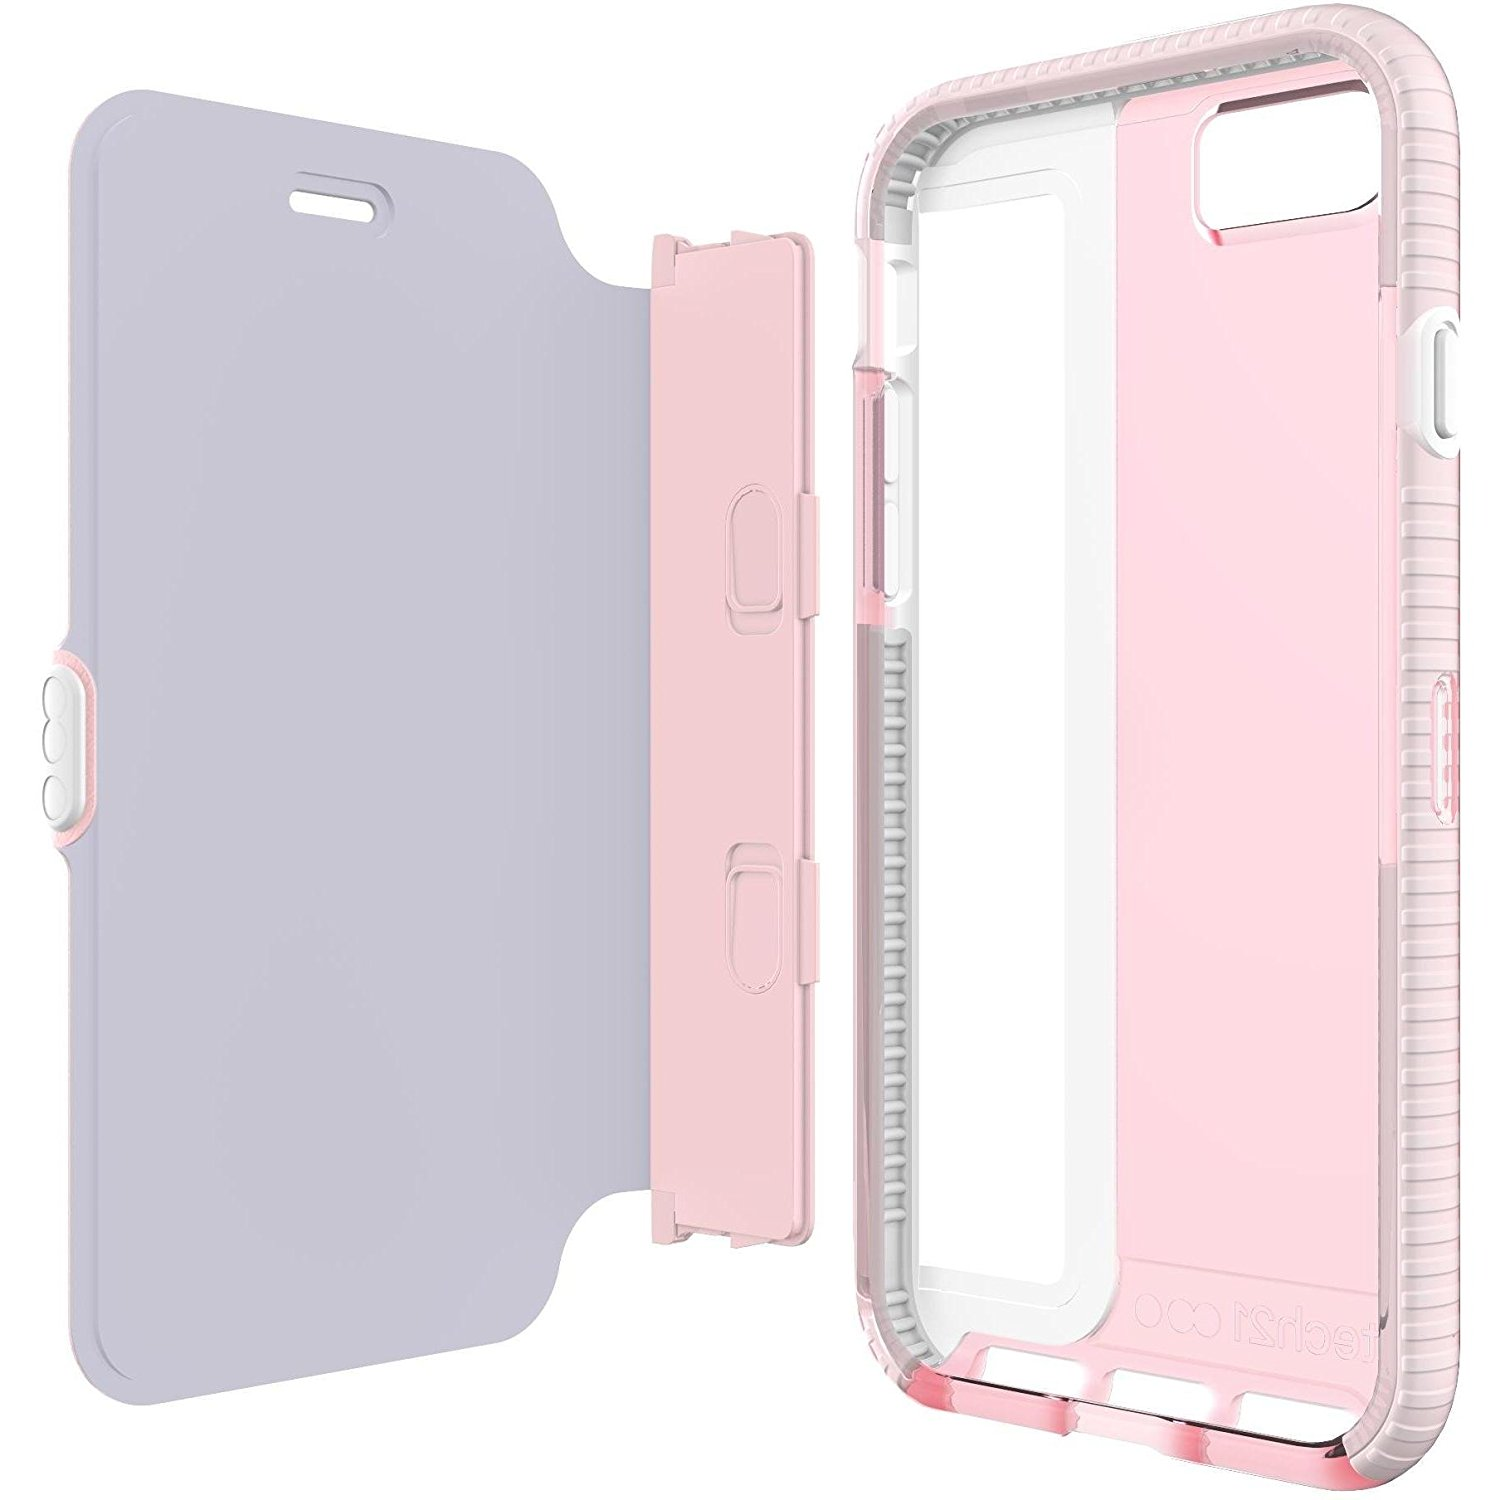 size 40 9f89c d78c0 Tech21 Evo Wallet Case for iPhone 8, iPhone 7 - Light Rose Pink